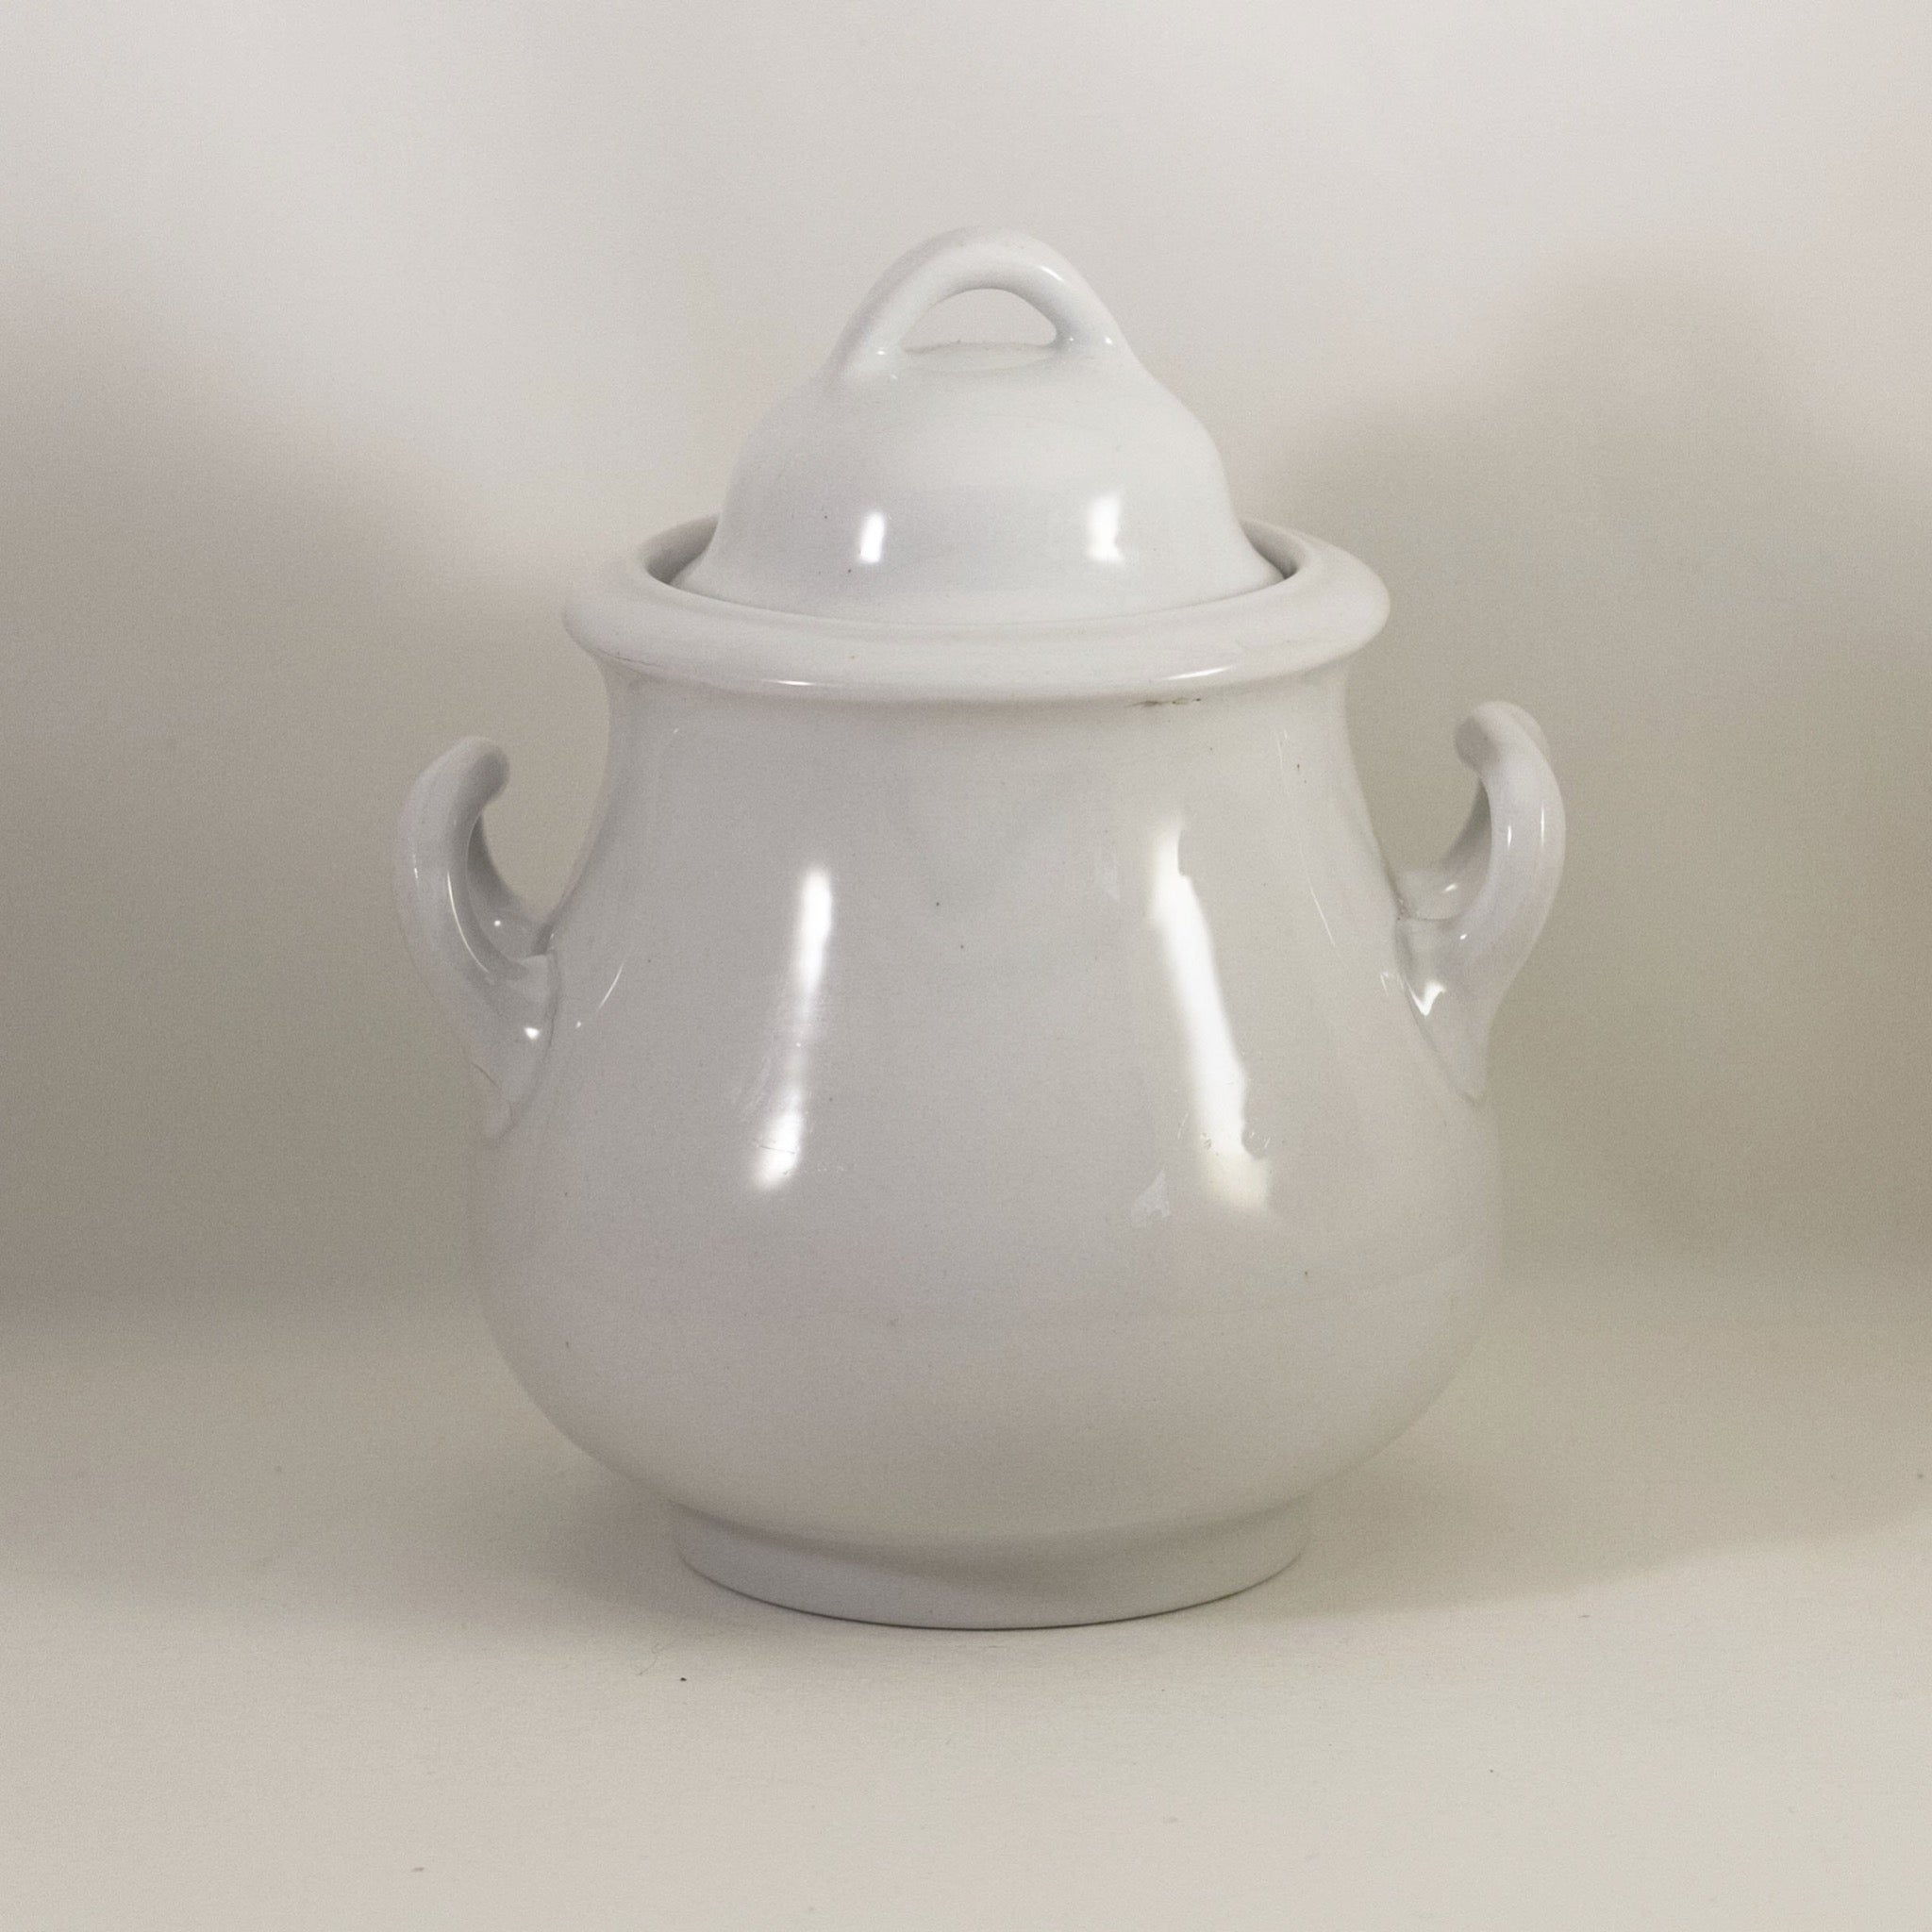 BURGESS & GODDARD Prince of Wales Covered Sugar Bowl Circa 1870s